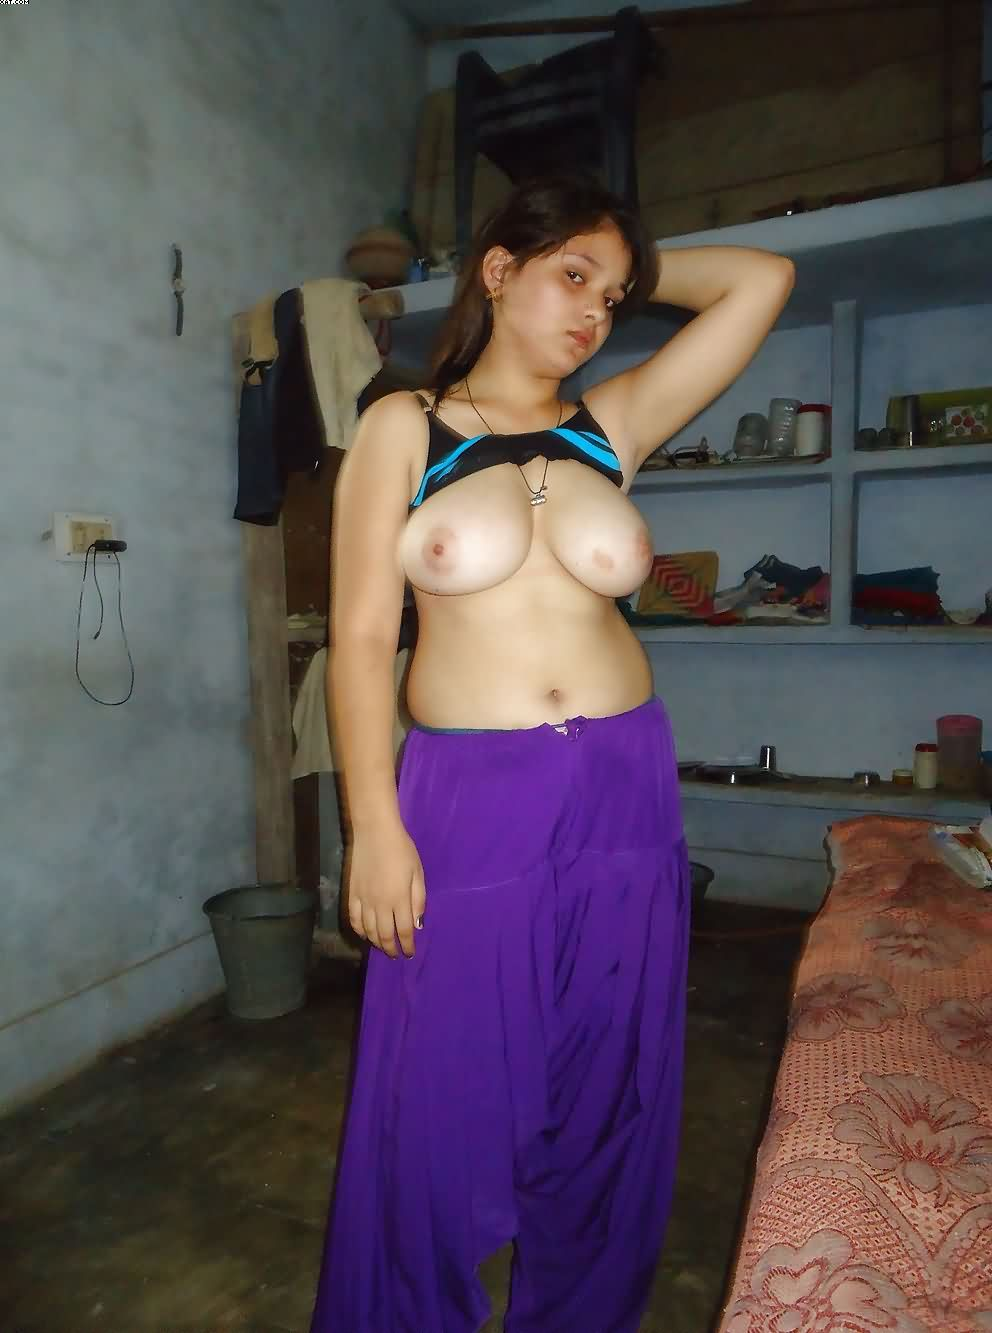 Beautiful Indian College Girl Stripping Showing -7444